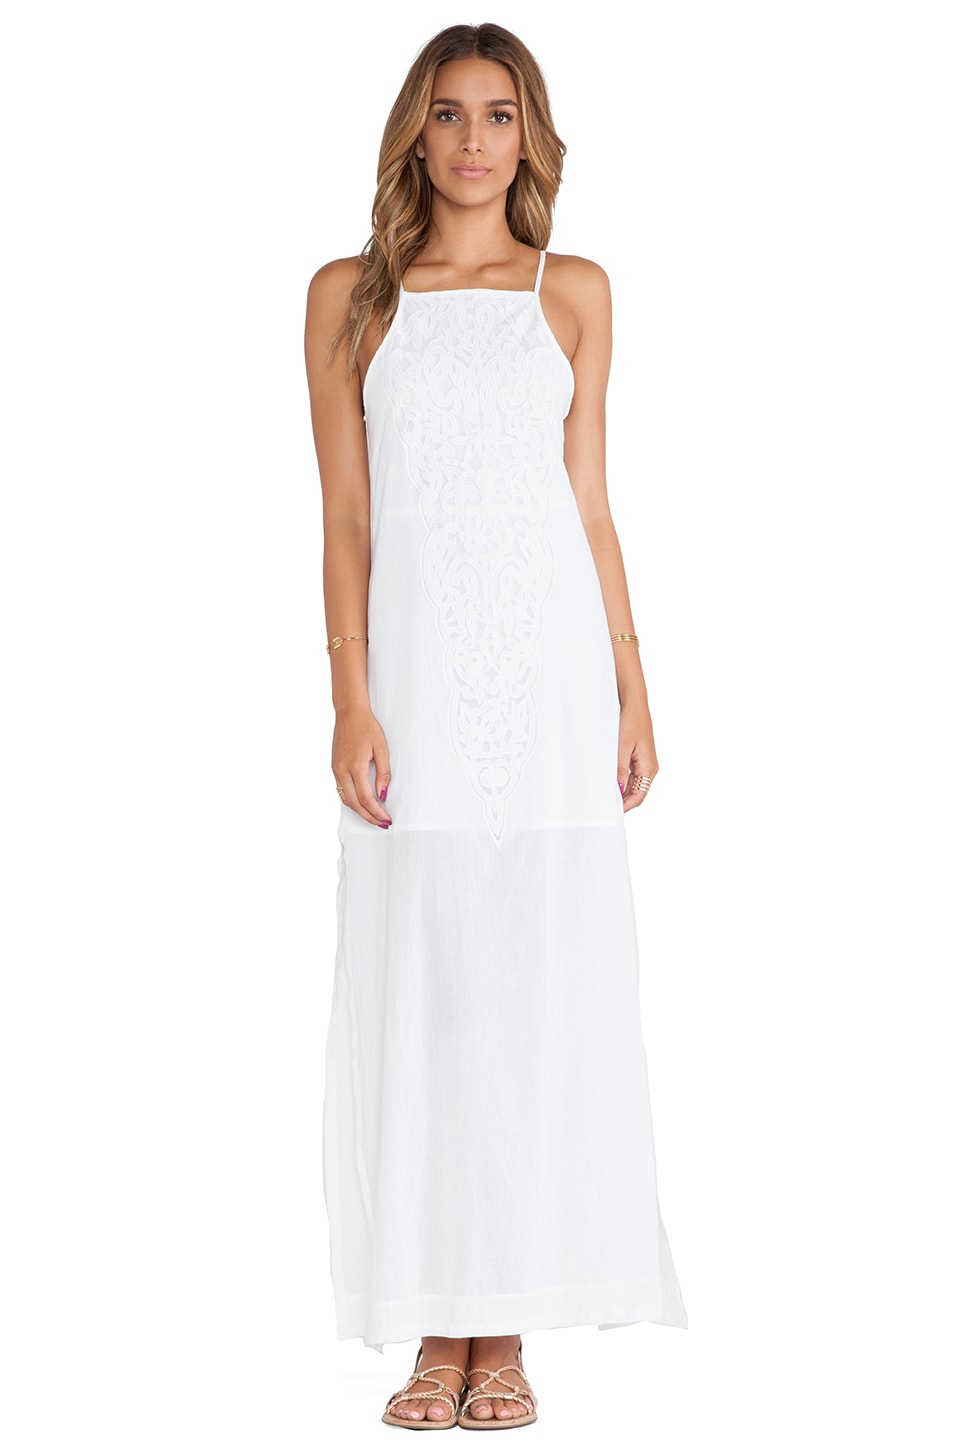 Vix Swimwear Teca Long Dress in Solid White